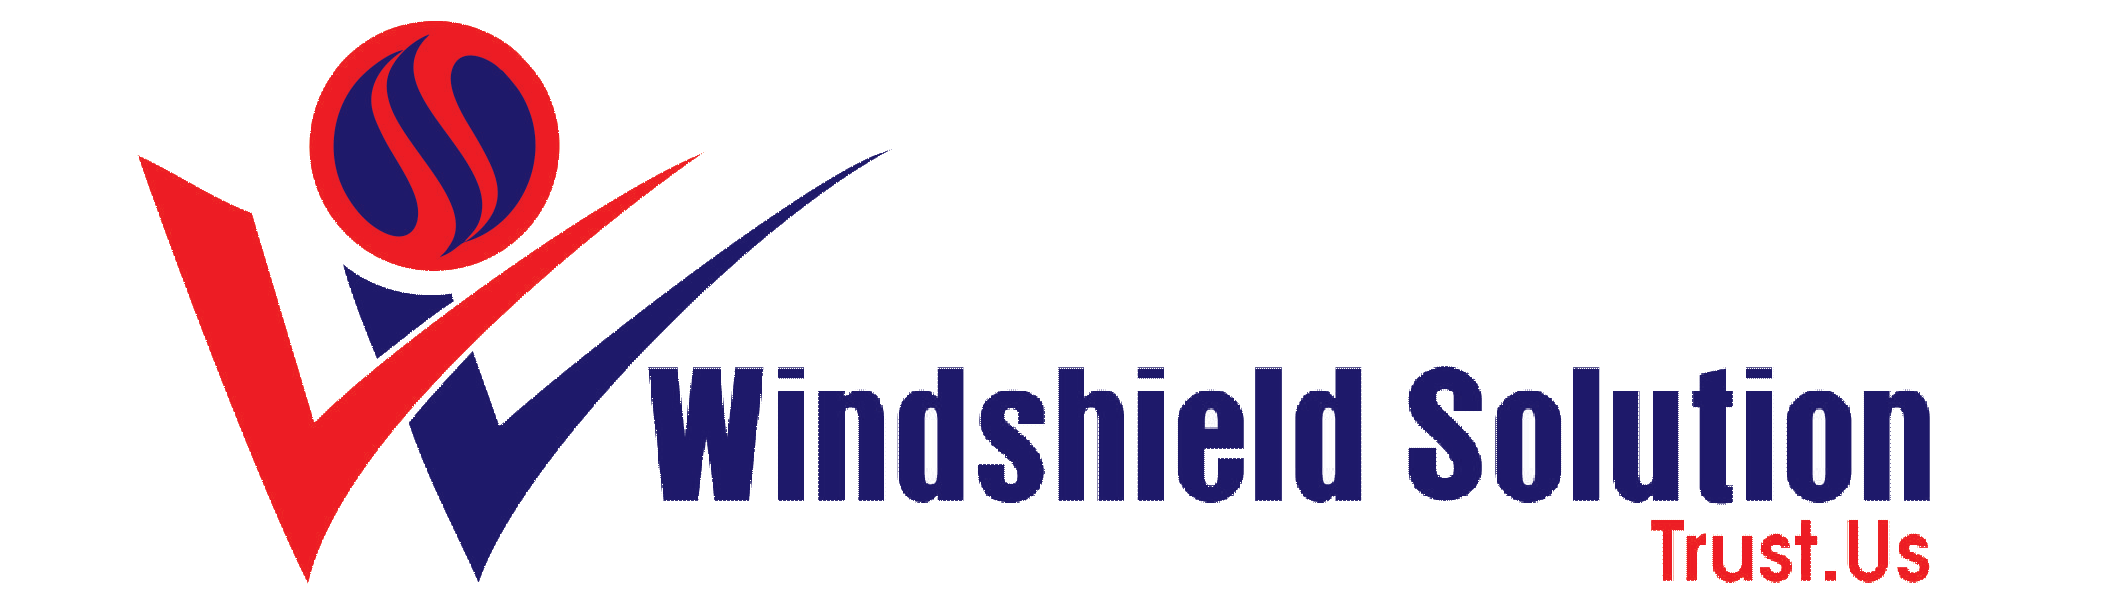 Wind Shield Solution